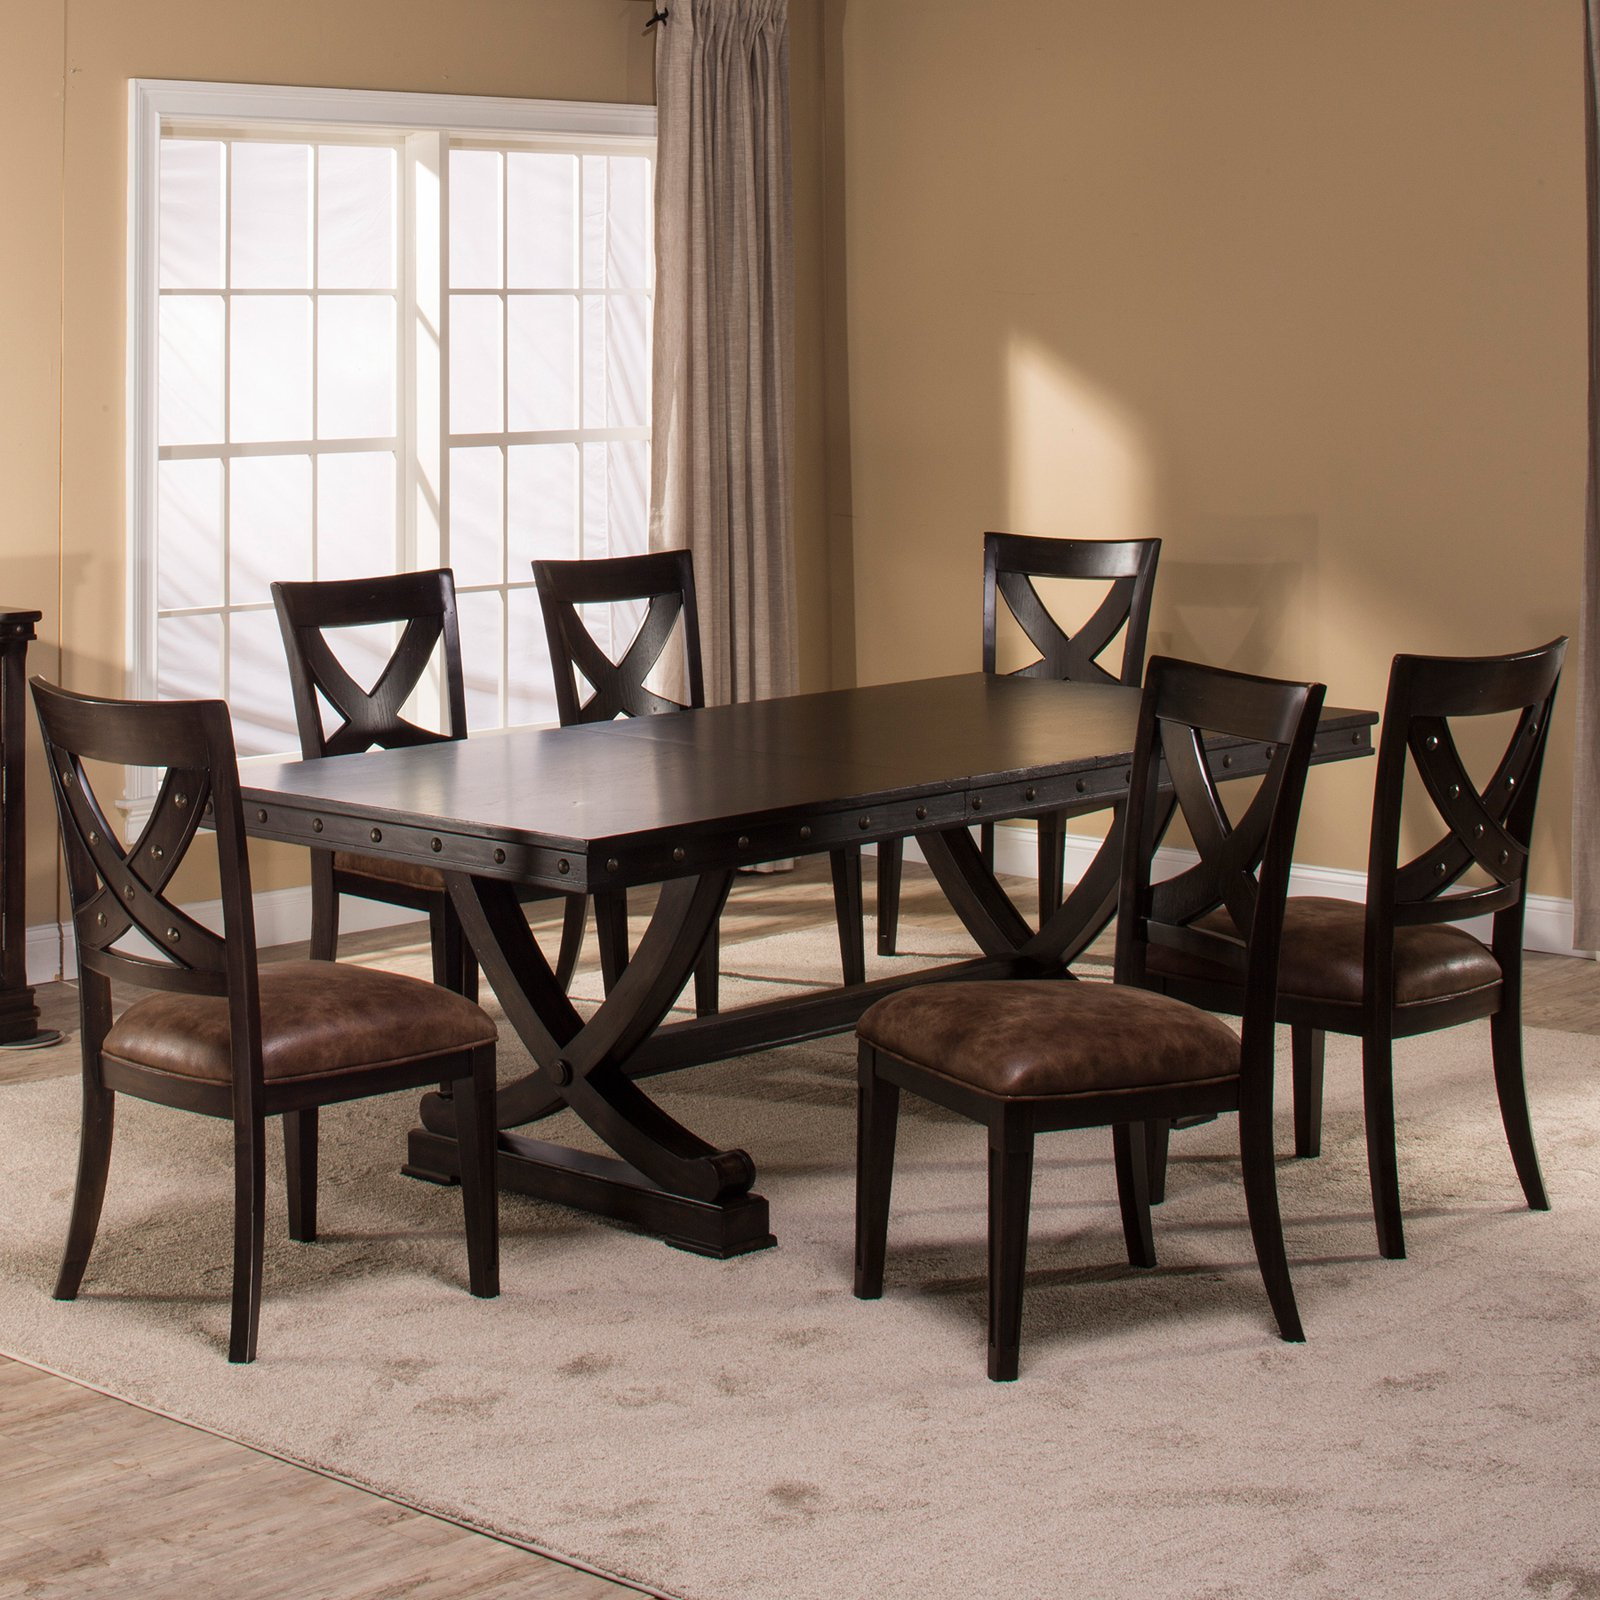 Hillsdale Santa Fe 7 Piece Dining Table Set Walmart Com Walmart Com